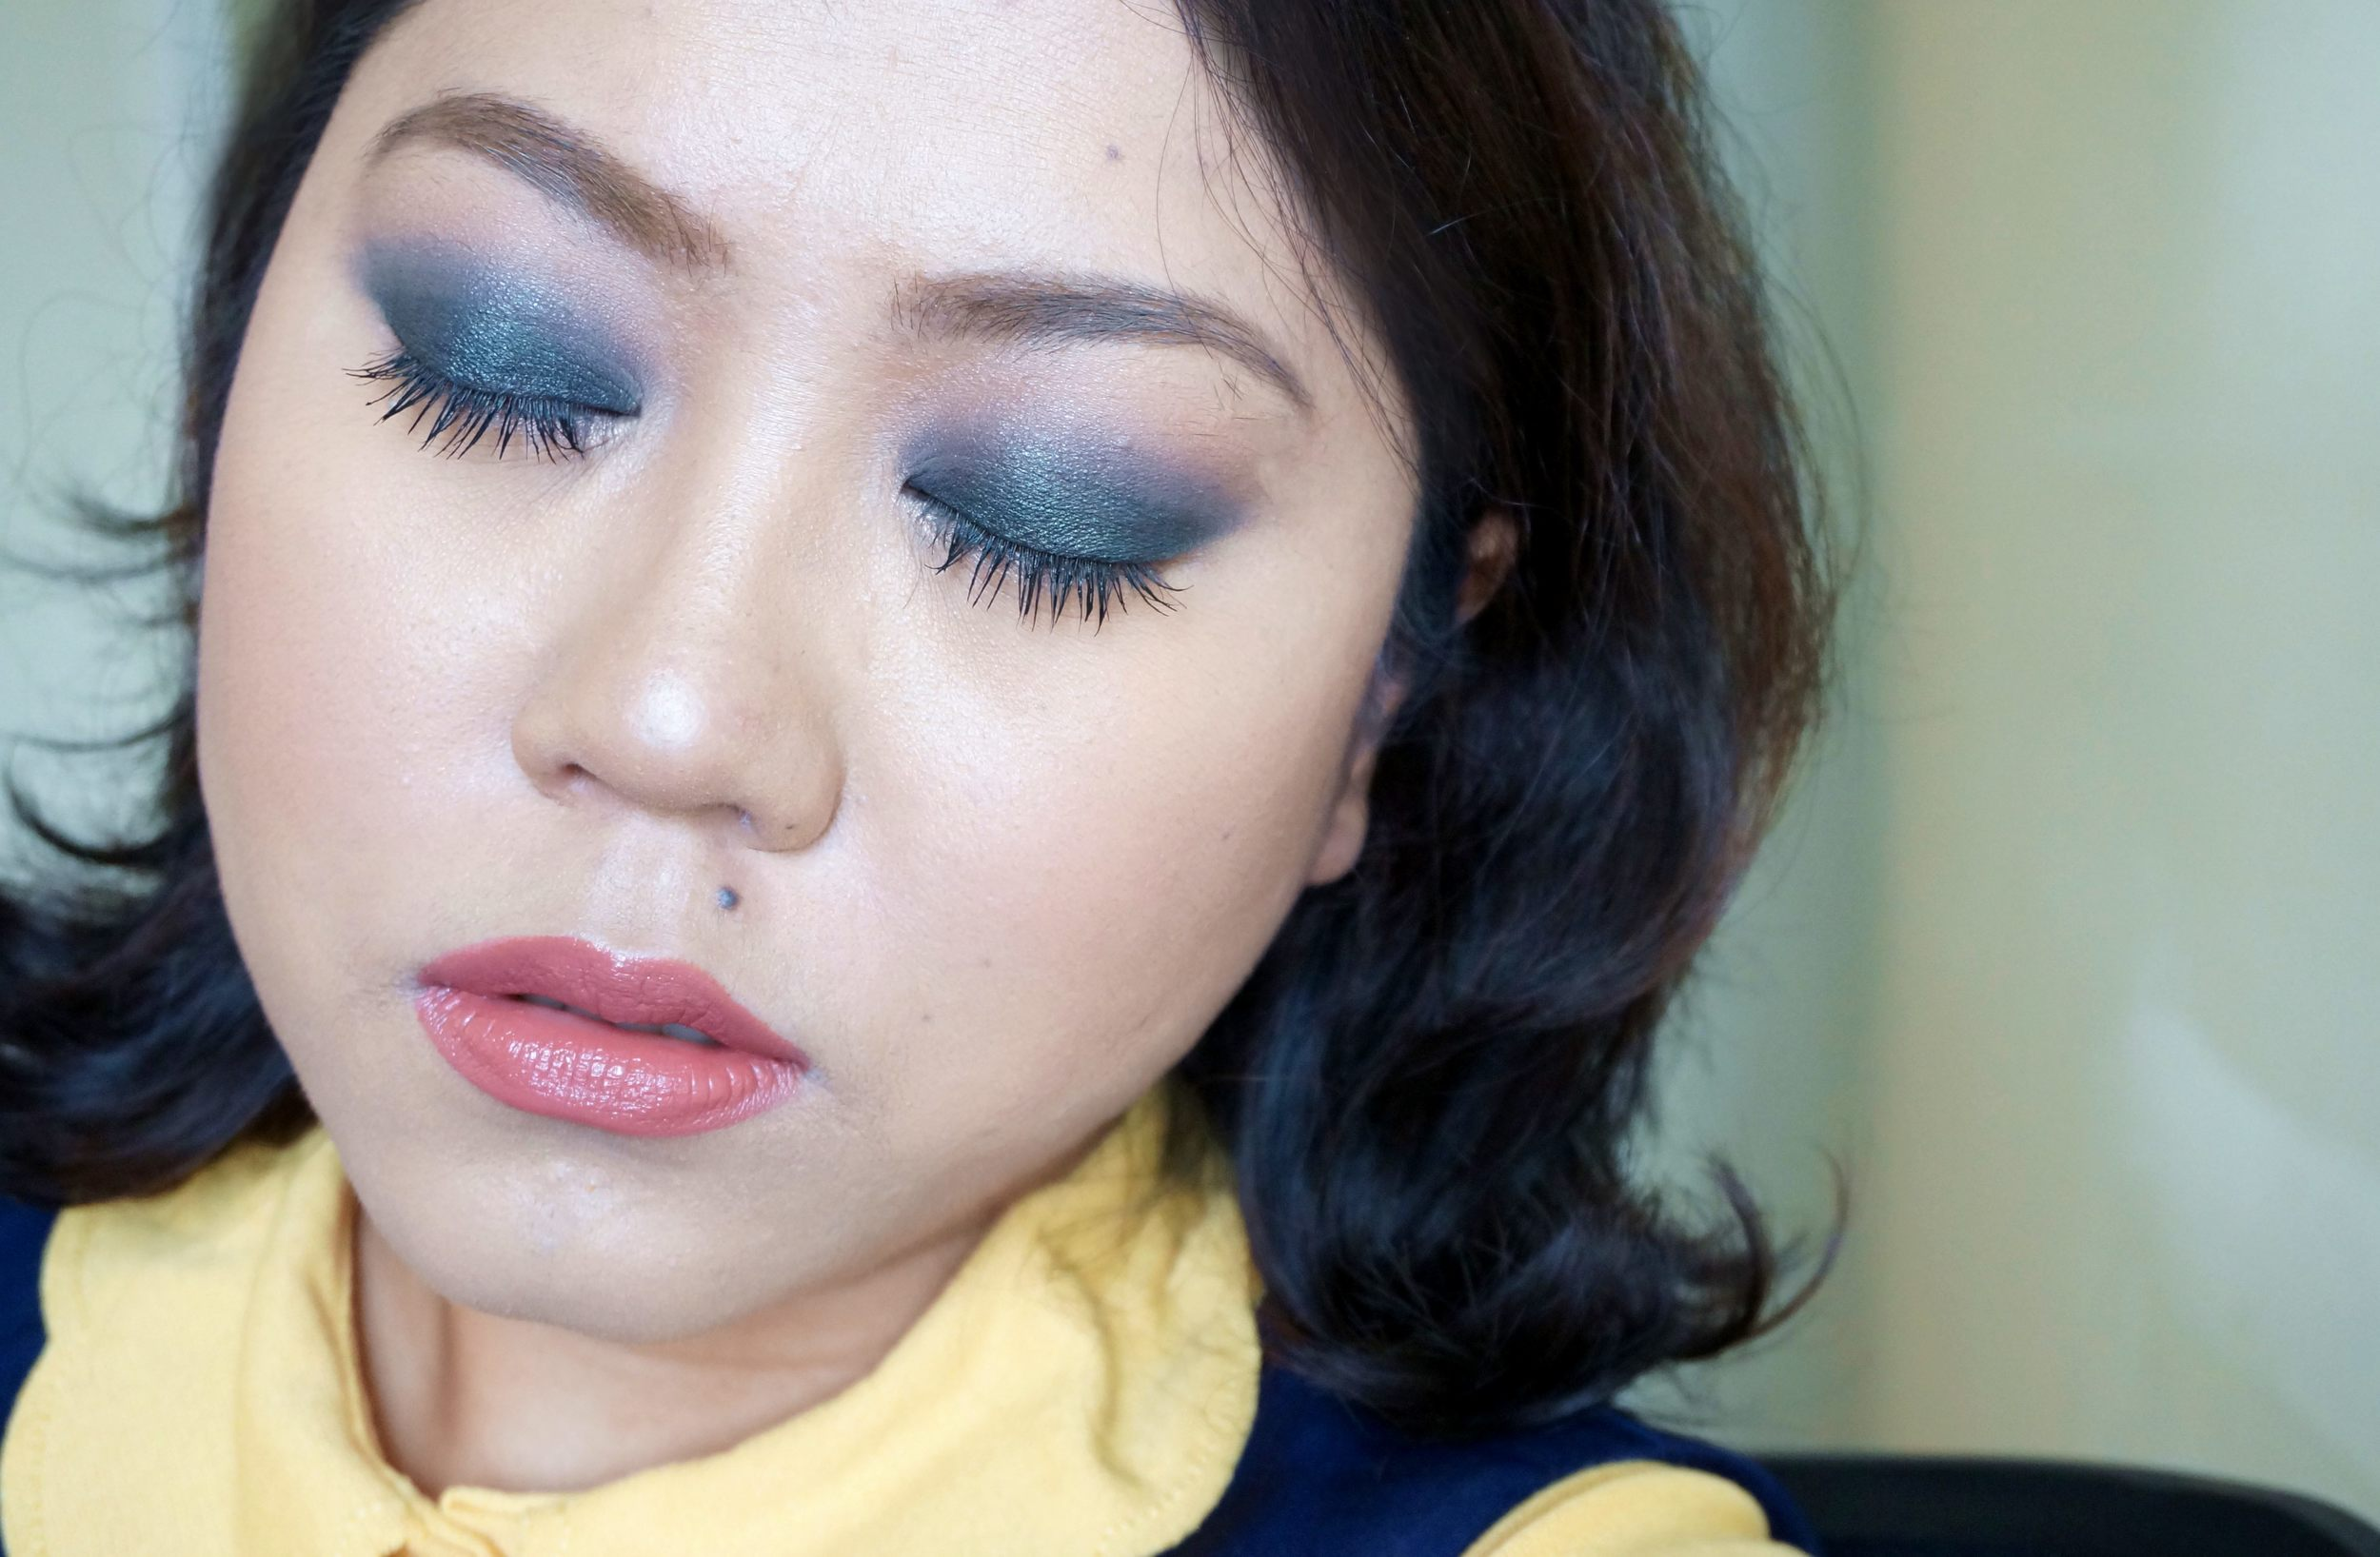 Here I have Deep Teal all over my lids then blended it with Stone on the crease, I added another blending shade, Khaki, just to soften the smokiness of the look.